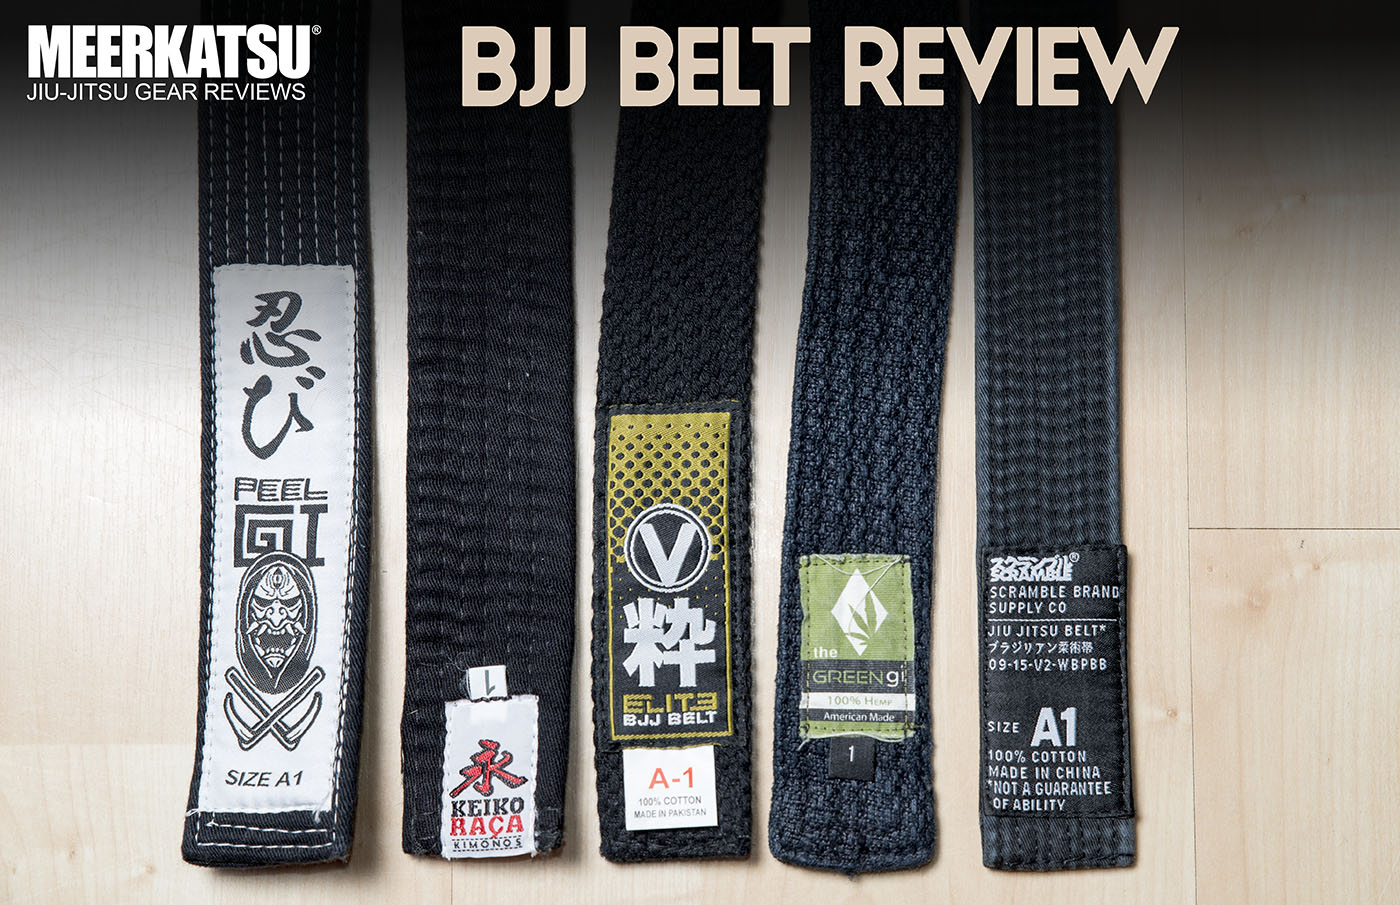 Belt review: Peel Gi, Keiko Raca, Valor, Green Gi, Scramble